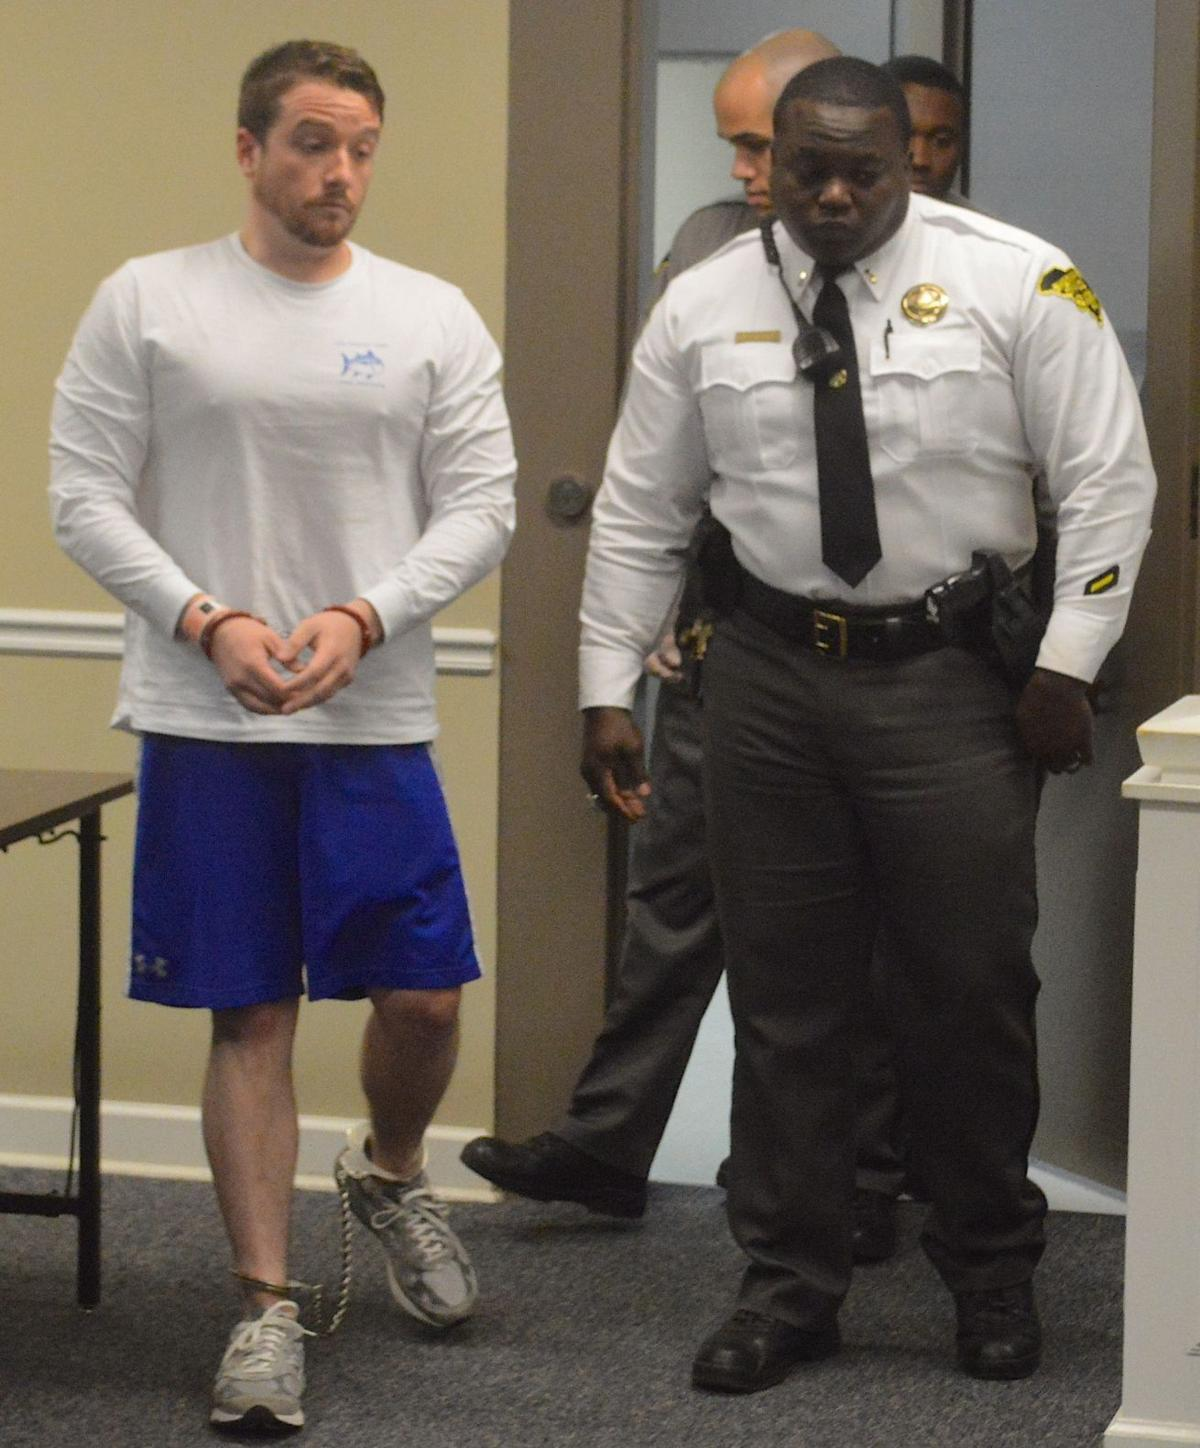 Chris Corley bond hearing 2016 - ankle chains